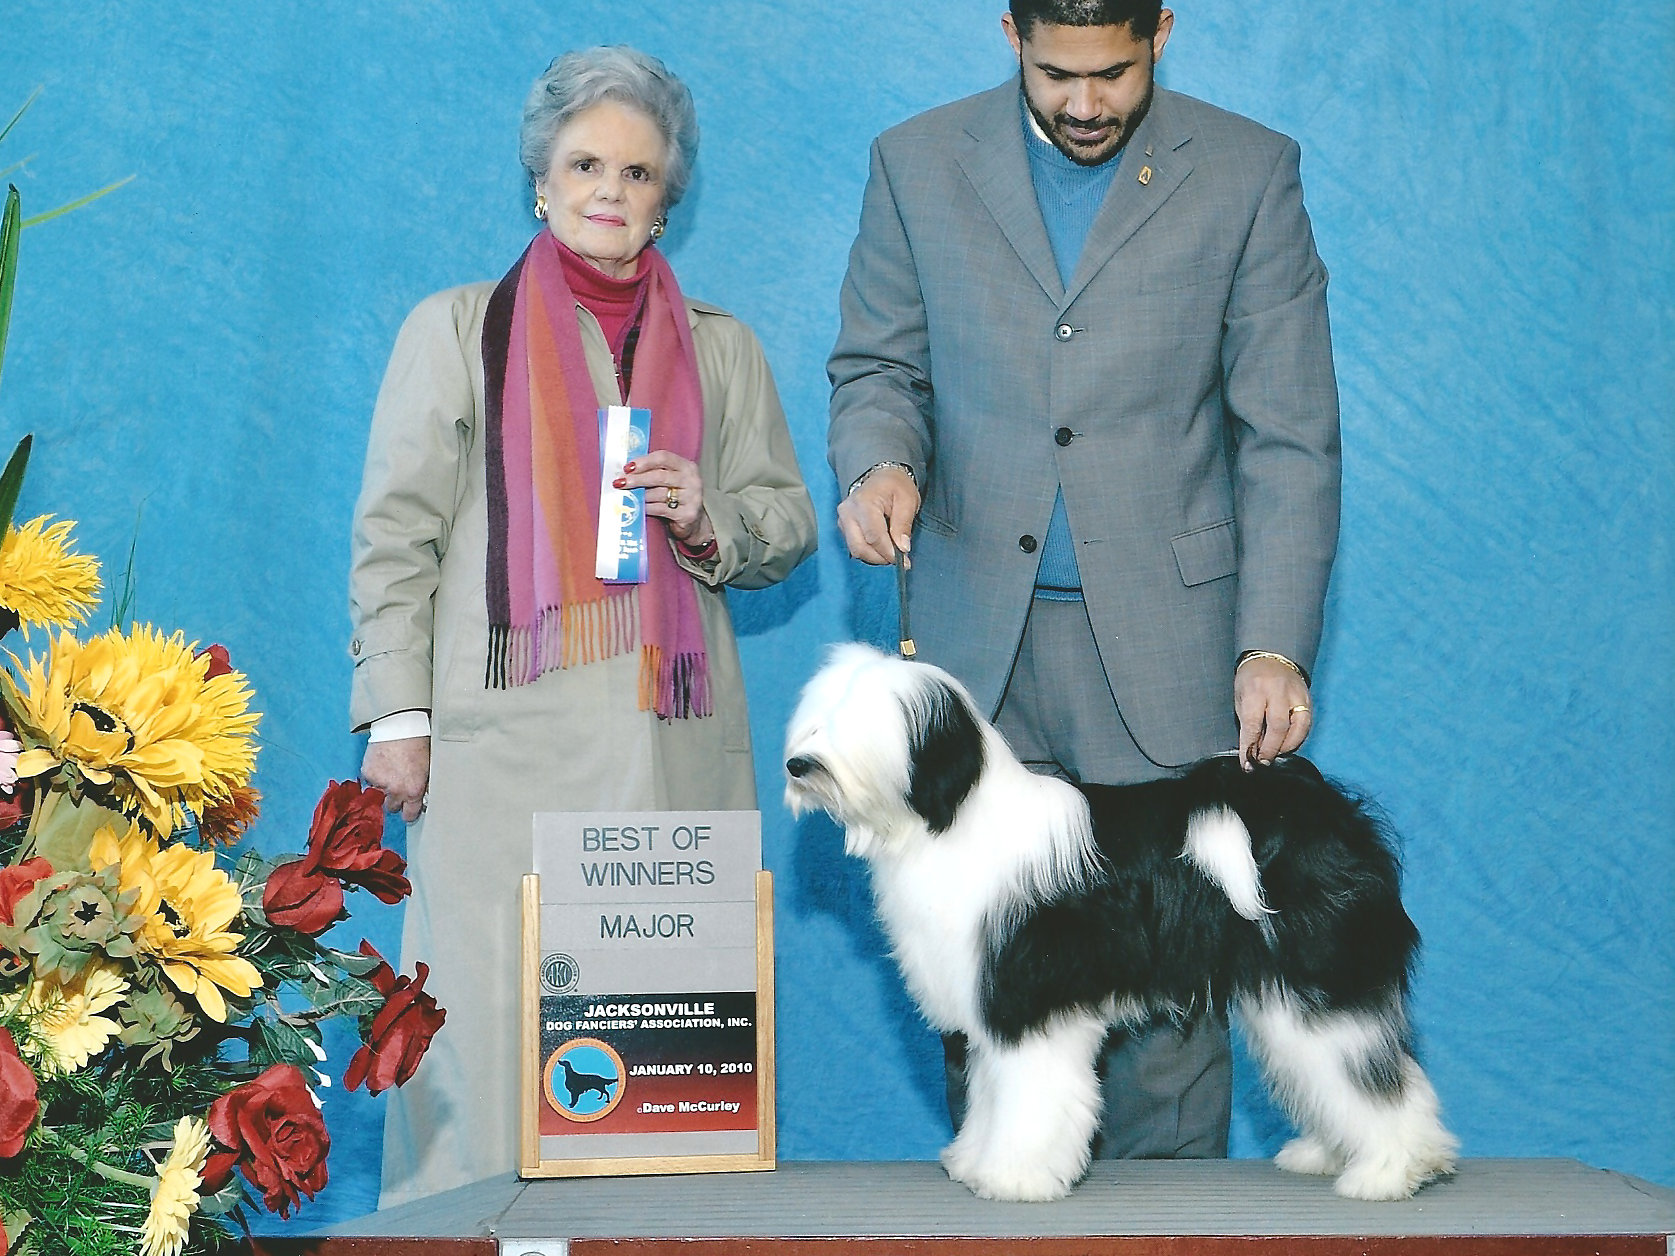 GRCH Kensington's Oliver Twist, winning his AKC Championship title at nine months of age.